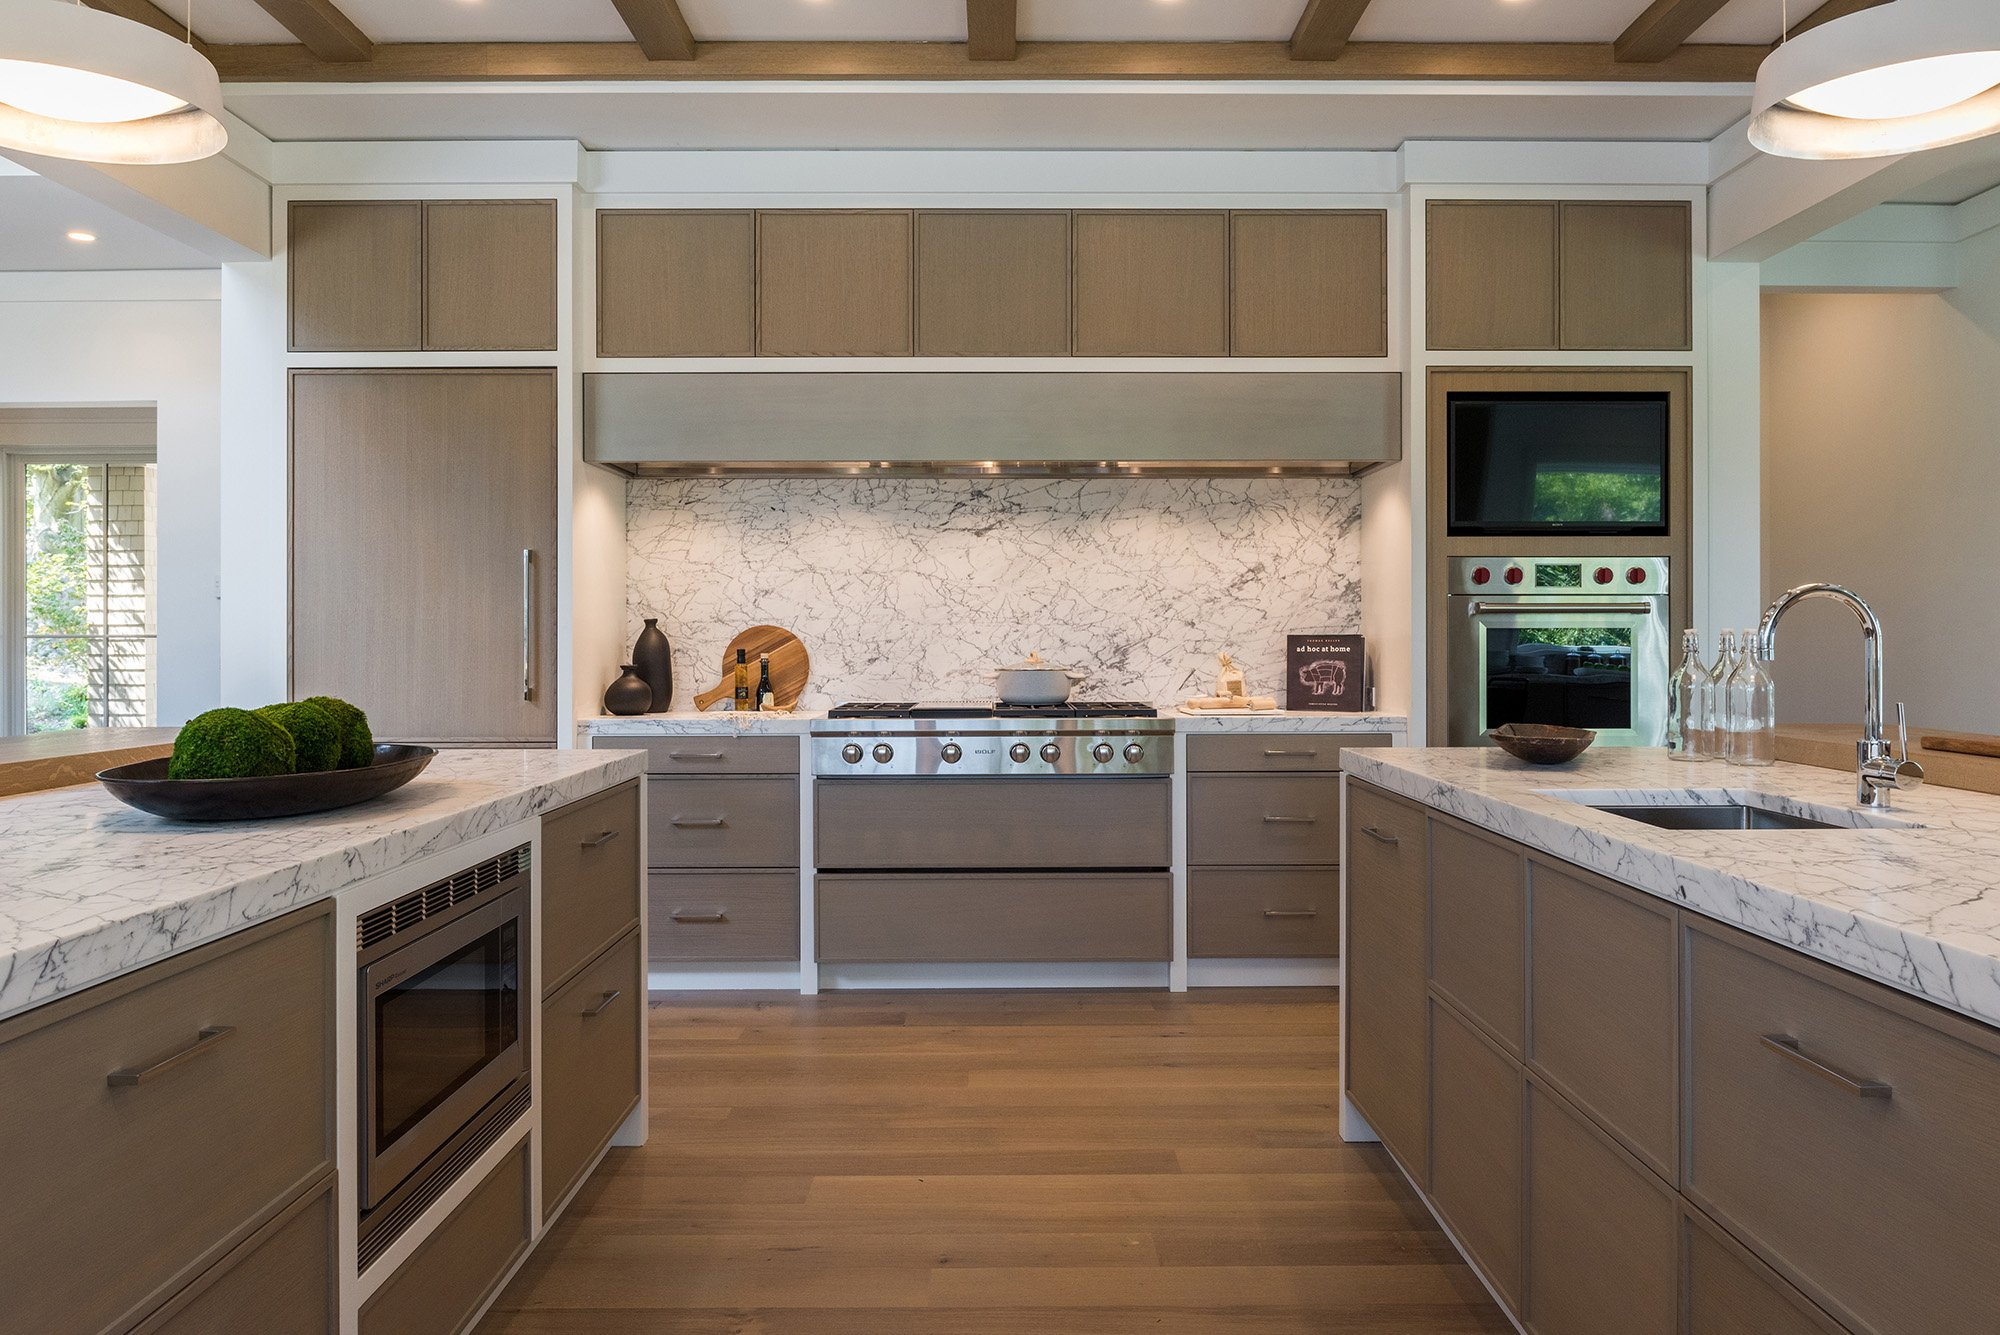 The HOBI Award-winning kitchen in Osprey, with custom cabinetry is superbly simple, yet remarkably functional.